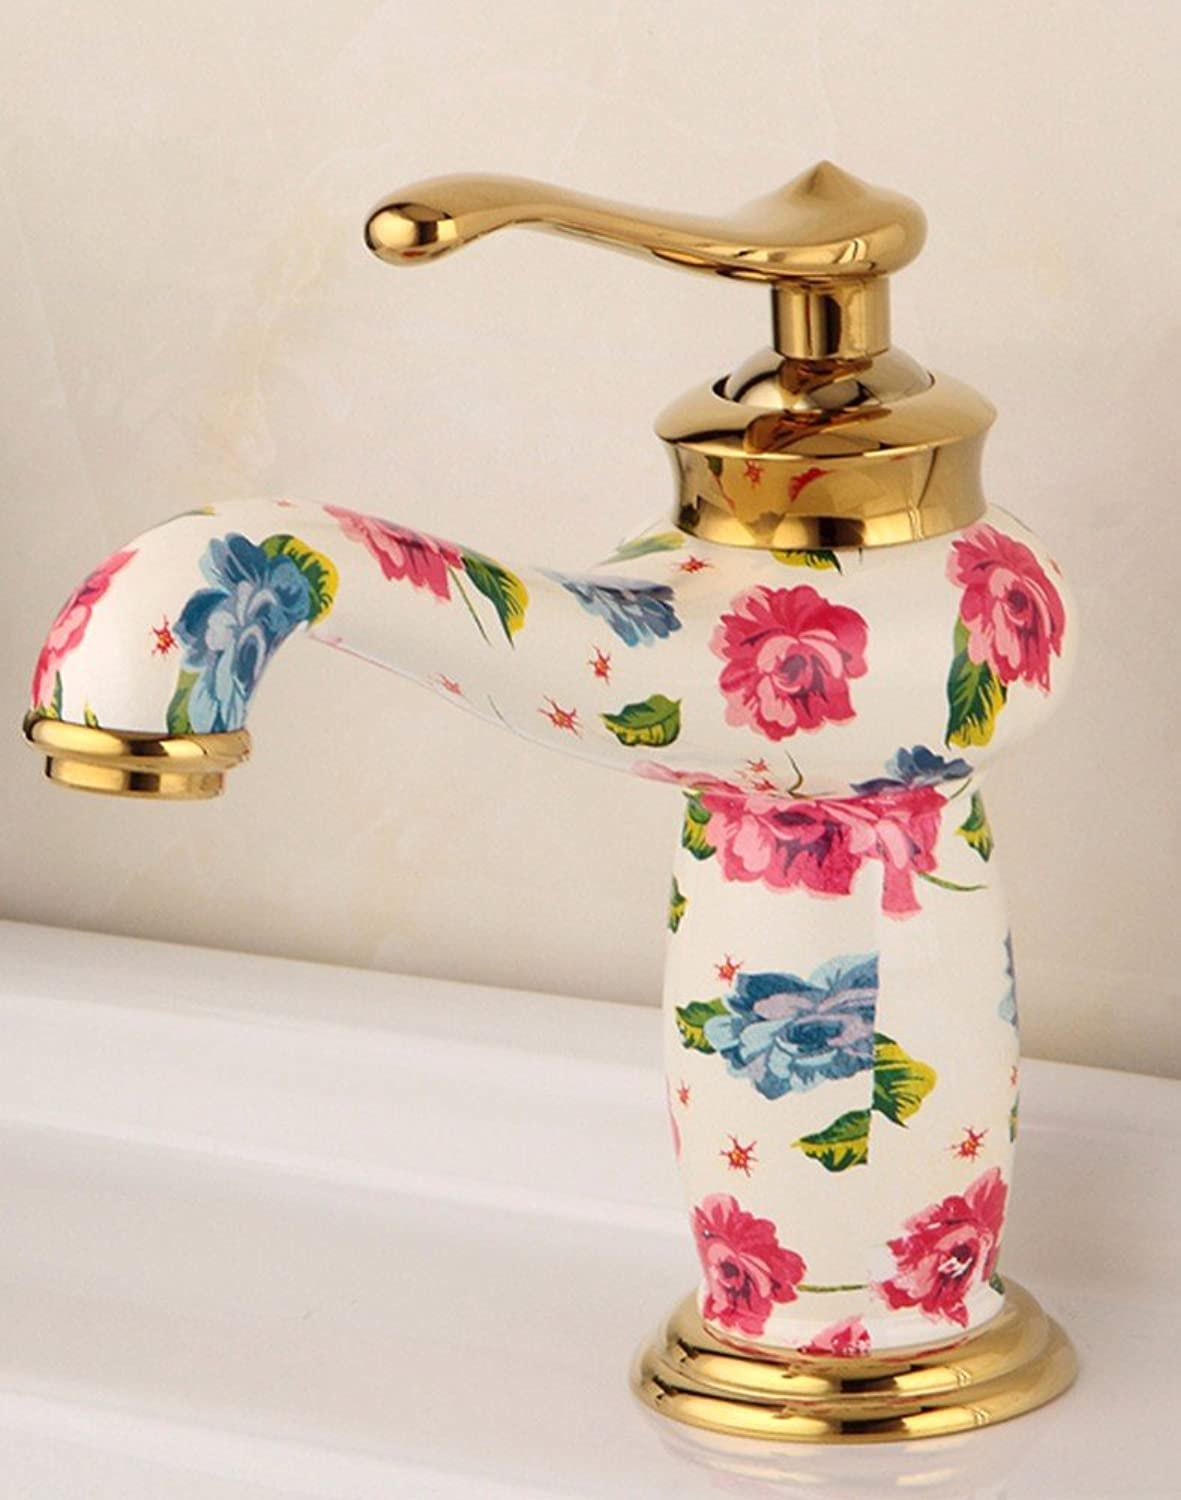 LHbox Basin Mixer Tap Bathroom Sink Faucet European retro style, copper basin, plus high, hot and cold water faucet 11